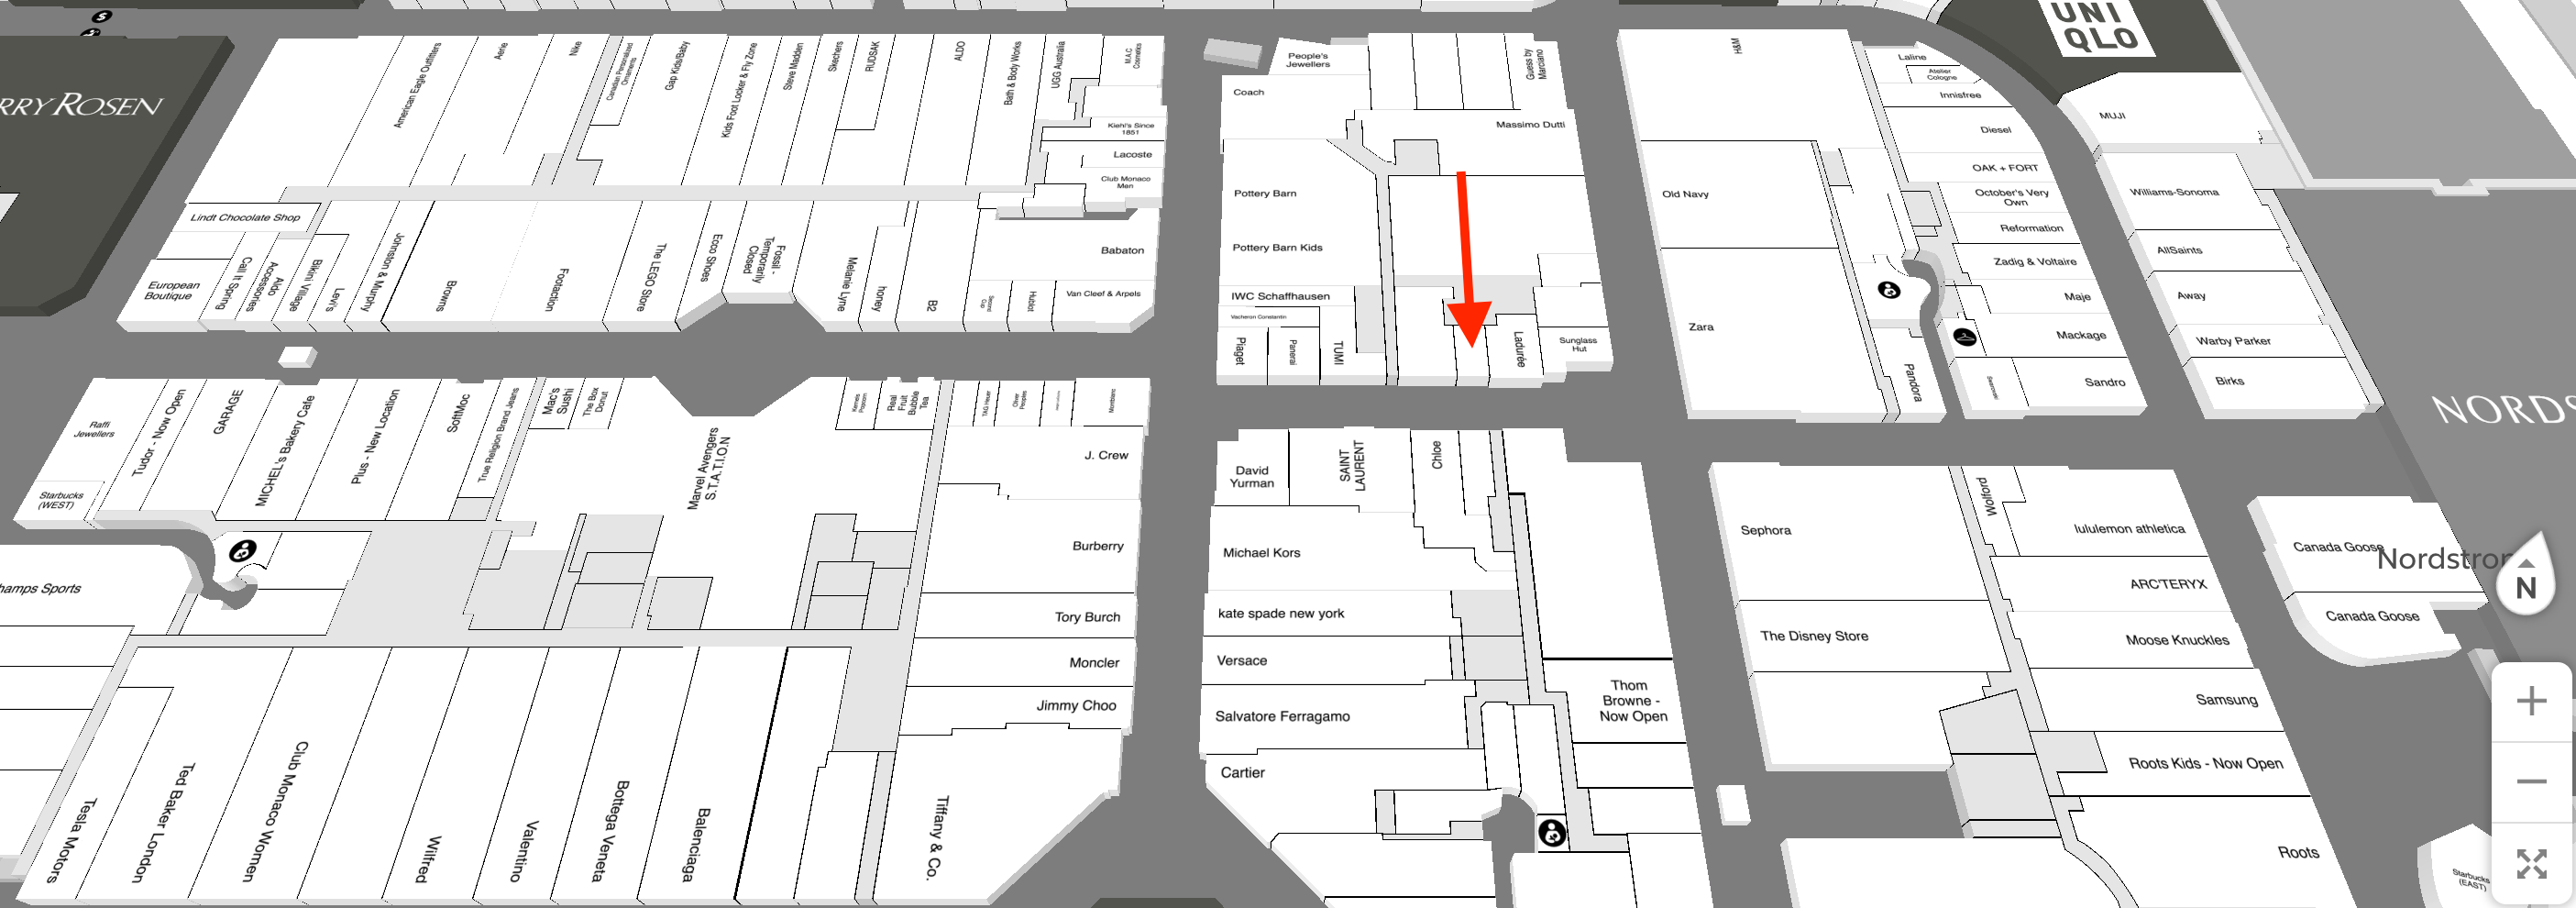 Map of Yorkdale Shopping Centre with red arrow indicating location of future Jo Malone store.